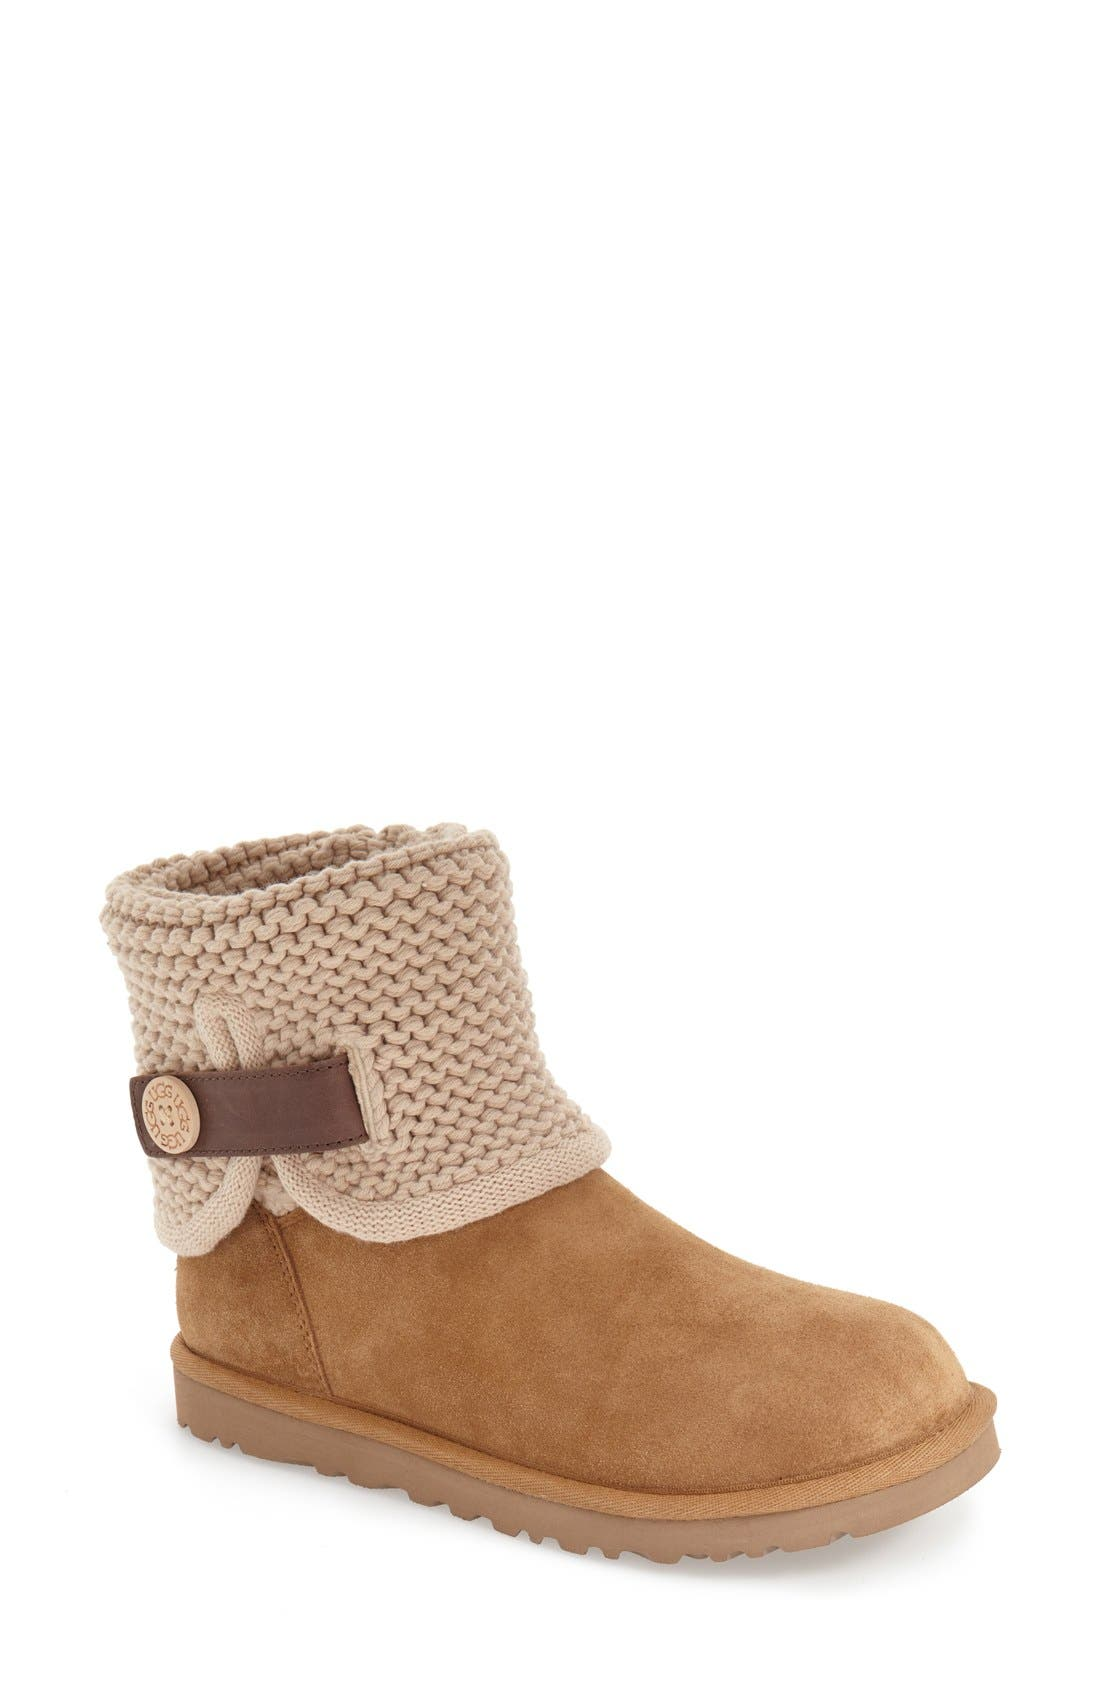 Shaina Knit Cuff Bootie,                         Main,                         color, Chestnut Suede